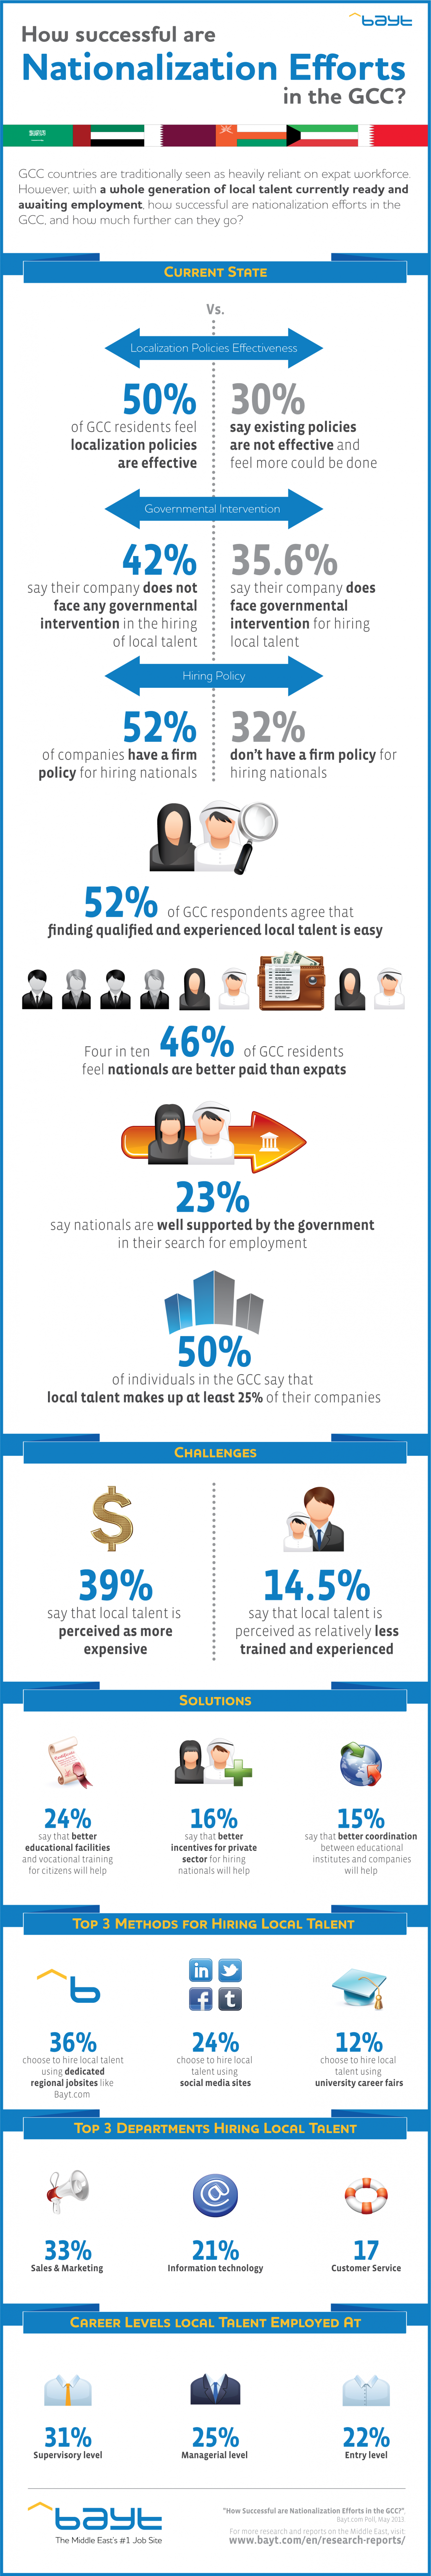 How Successful Are Nationalization Efforts In The GCC? Infographic